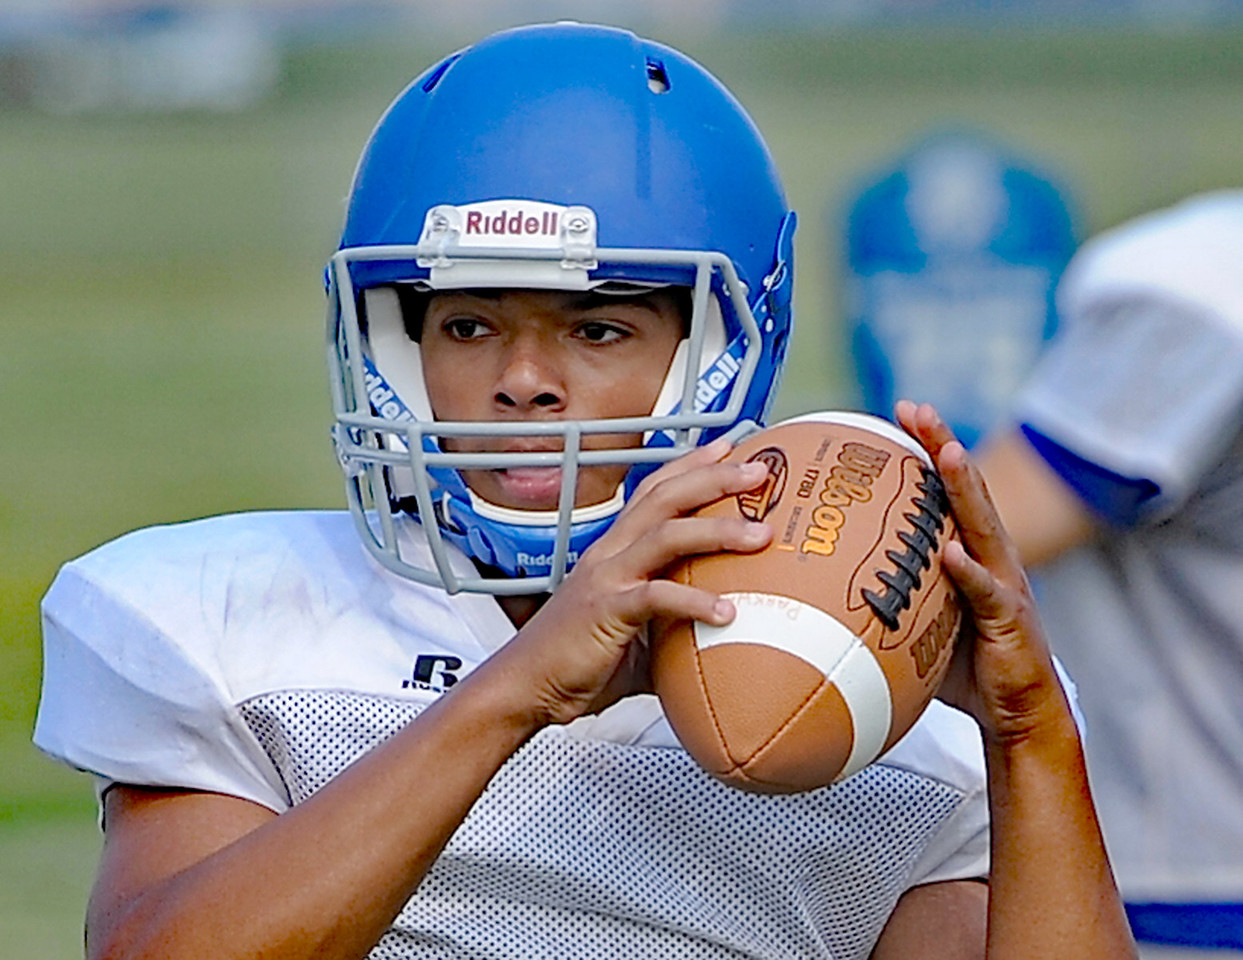 The Parkway Christian High School football team gets ready for the 2017 season. THE MACOMB DAILY PHOTO GALLERY BY DAVID DALTON